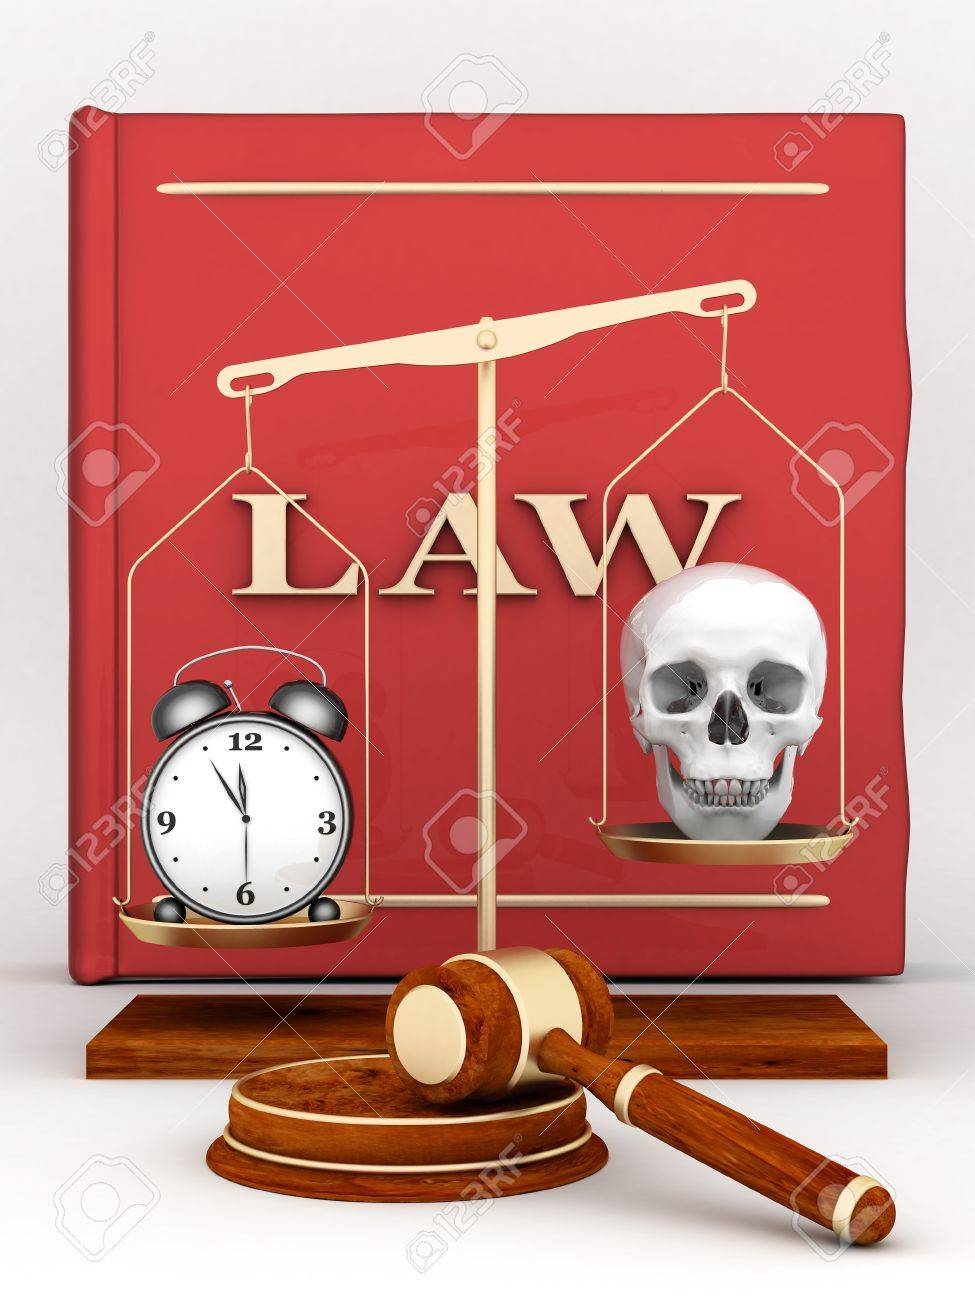 beautiful image of judicial attributes on a white background Stock Photo - 10337601